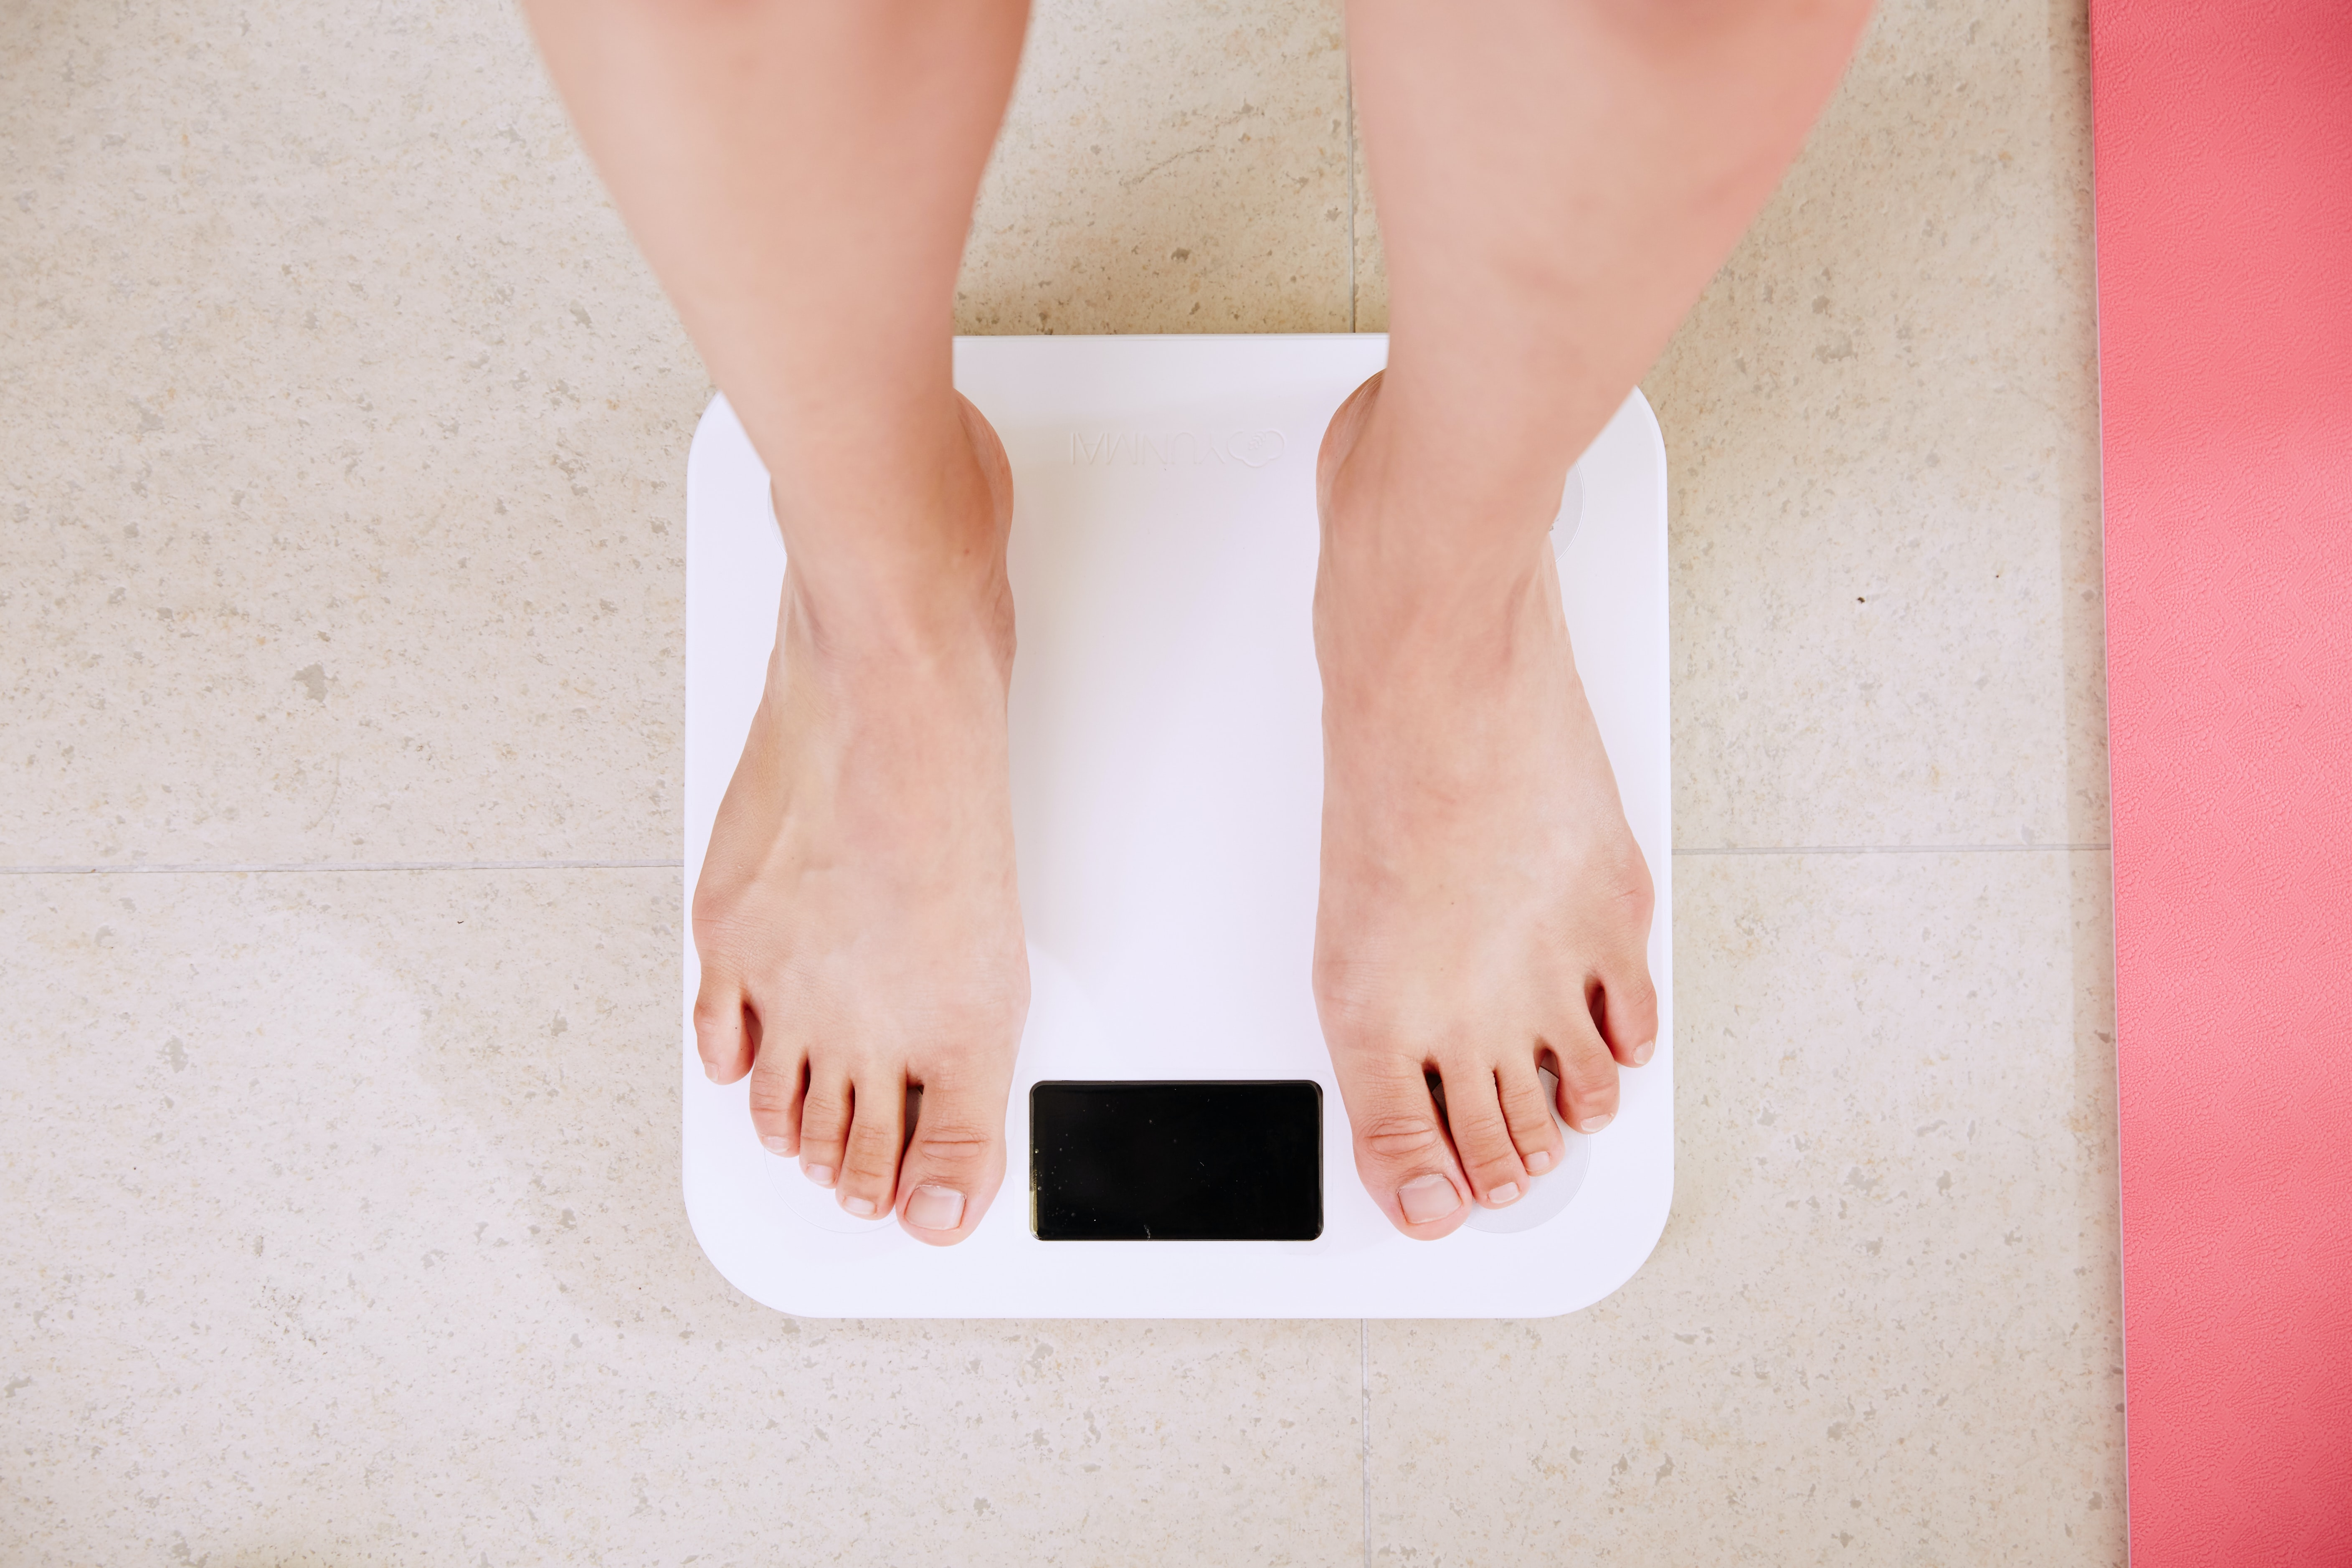 Person standing on a bathroom scale.